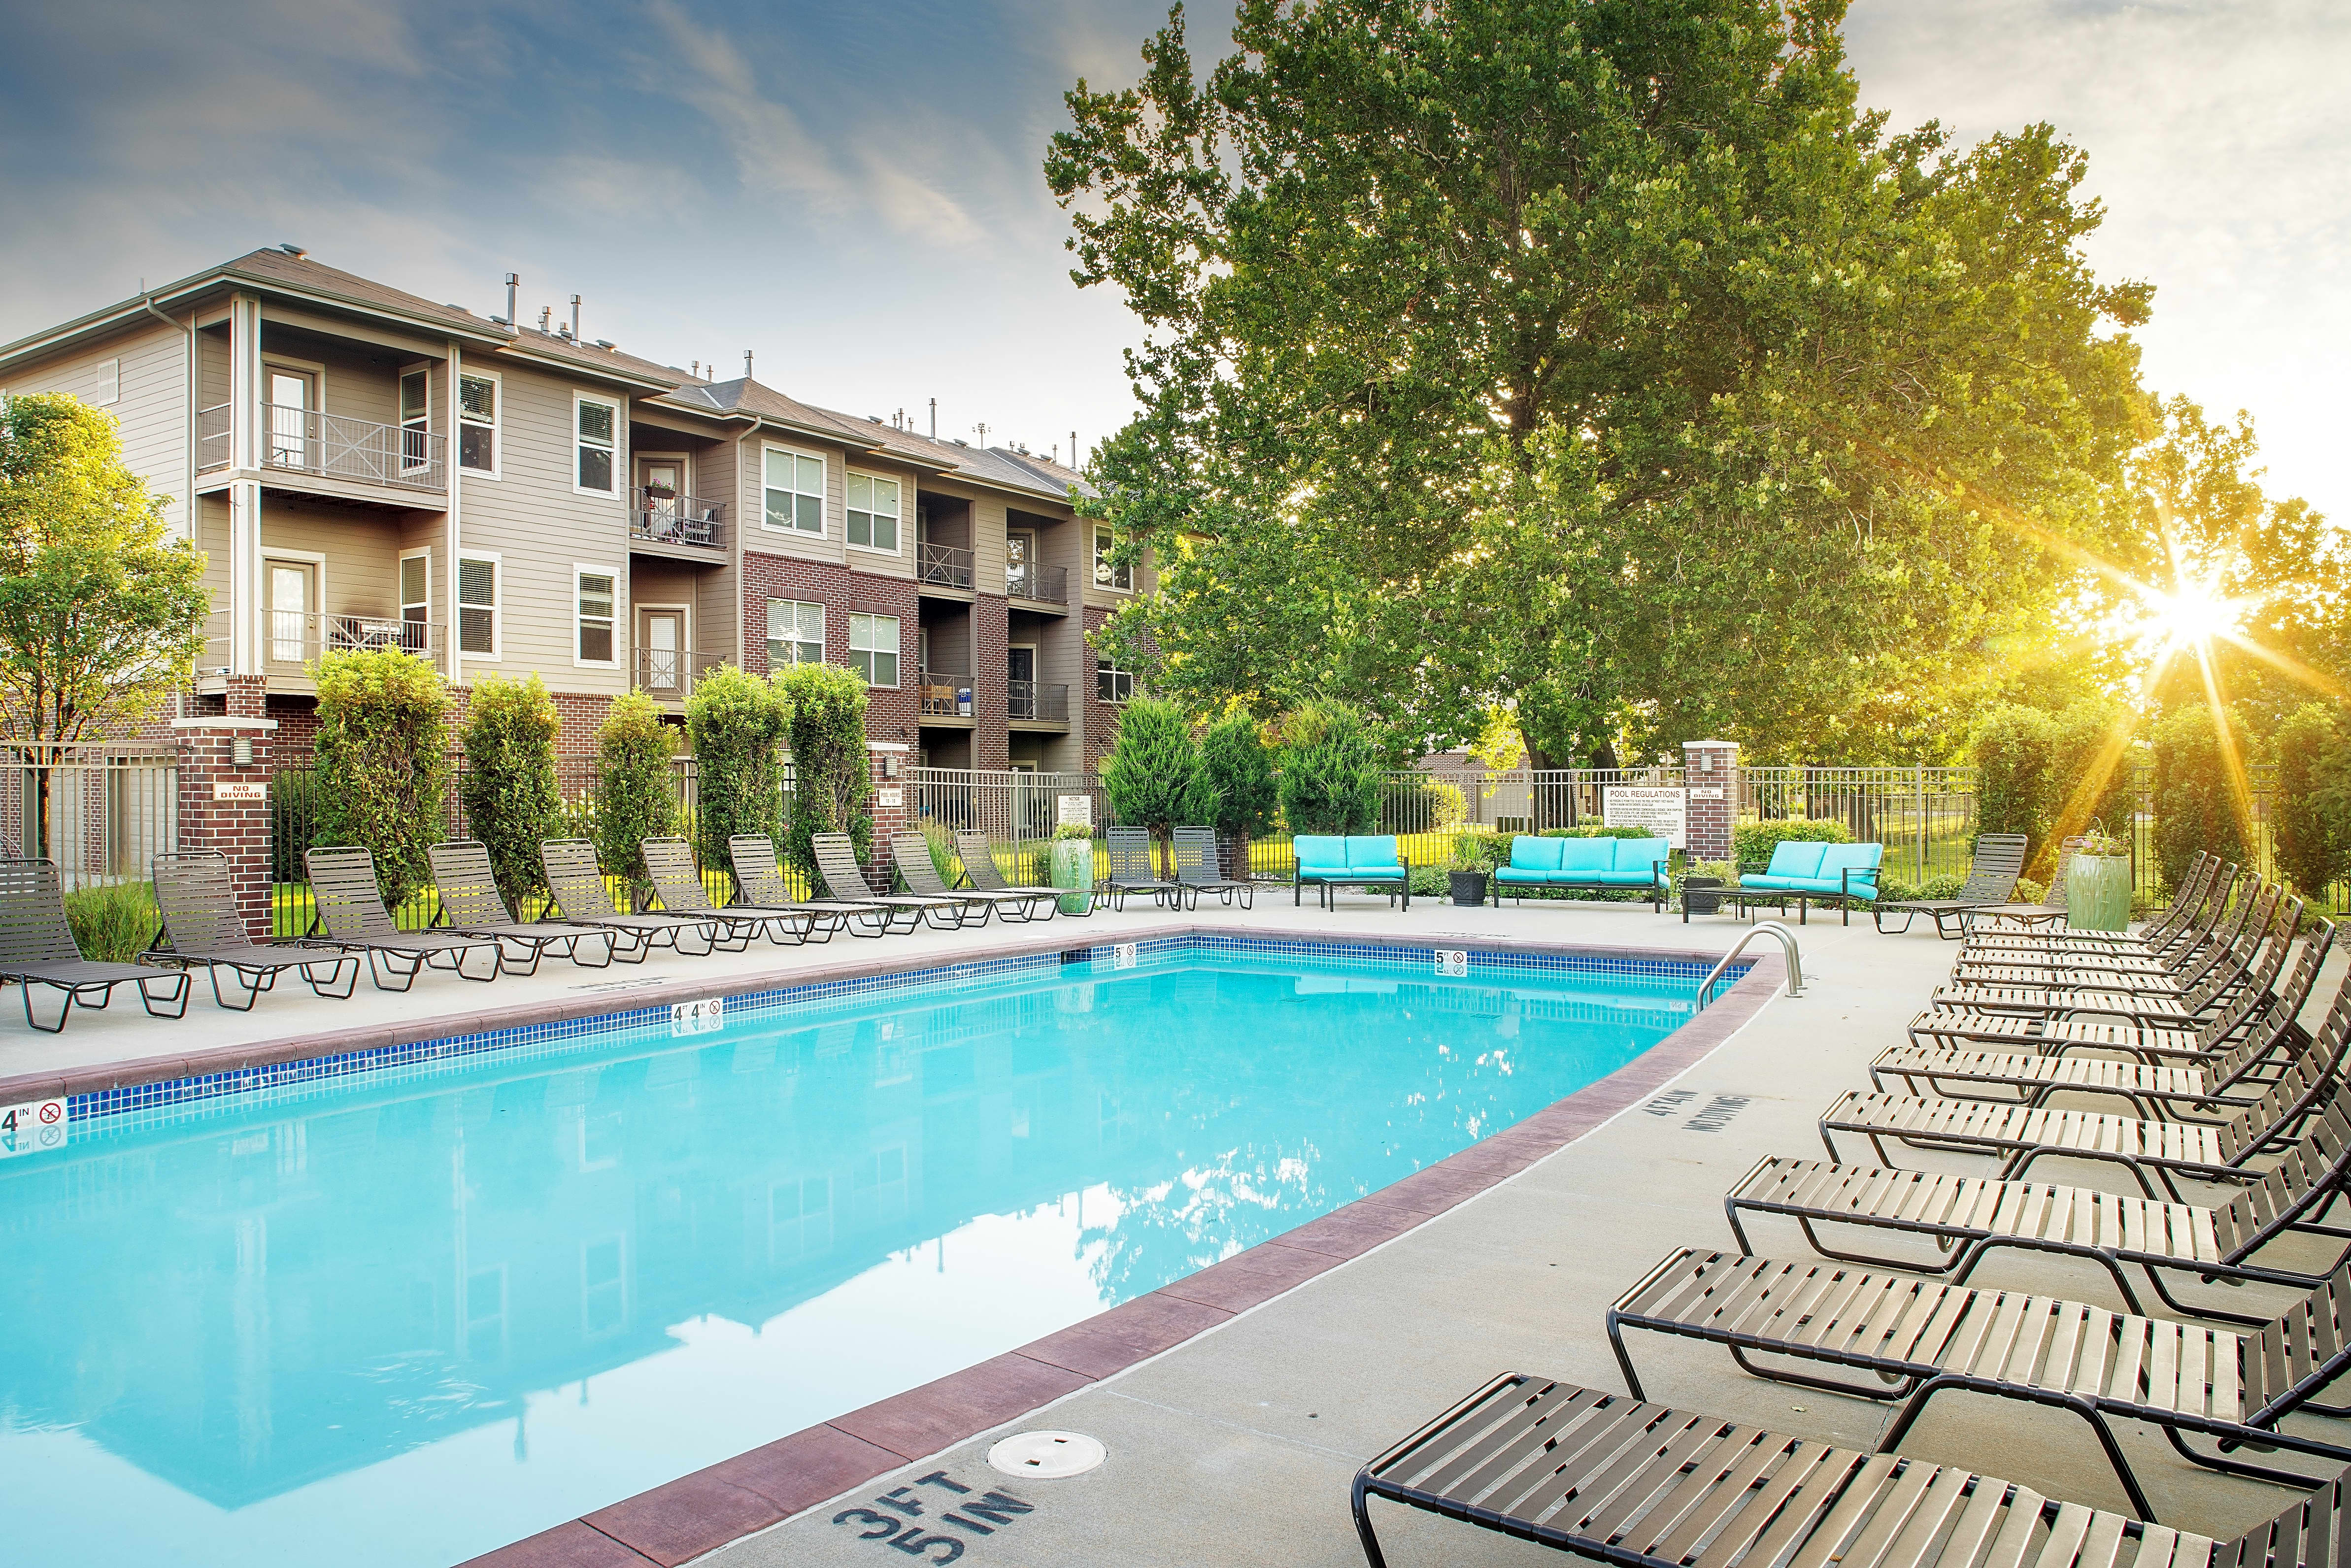 Apartments Near IWCC River Park by Broadmoor for Iowa Western Community College Students in Council Bluffs, IA